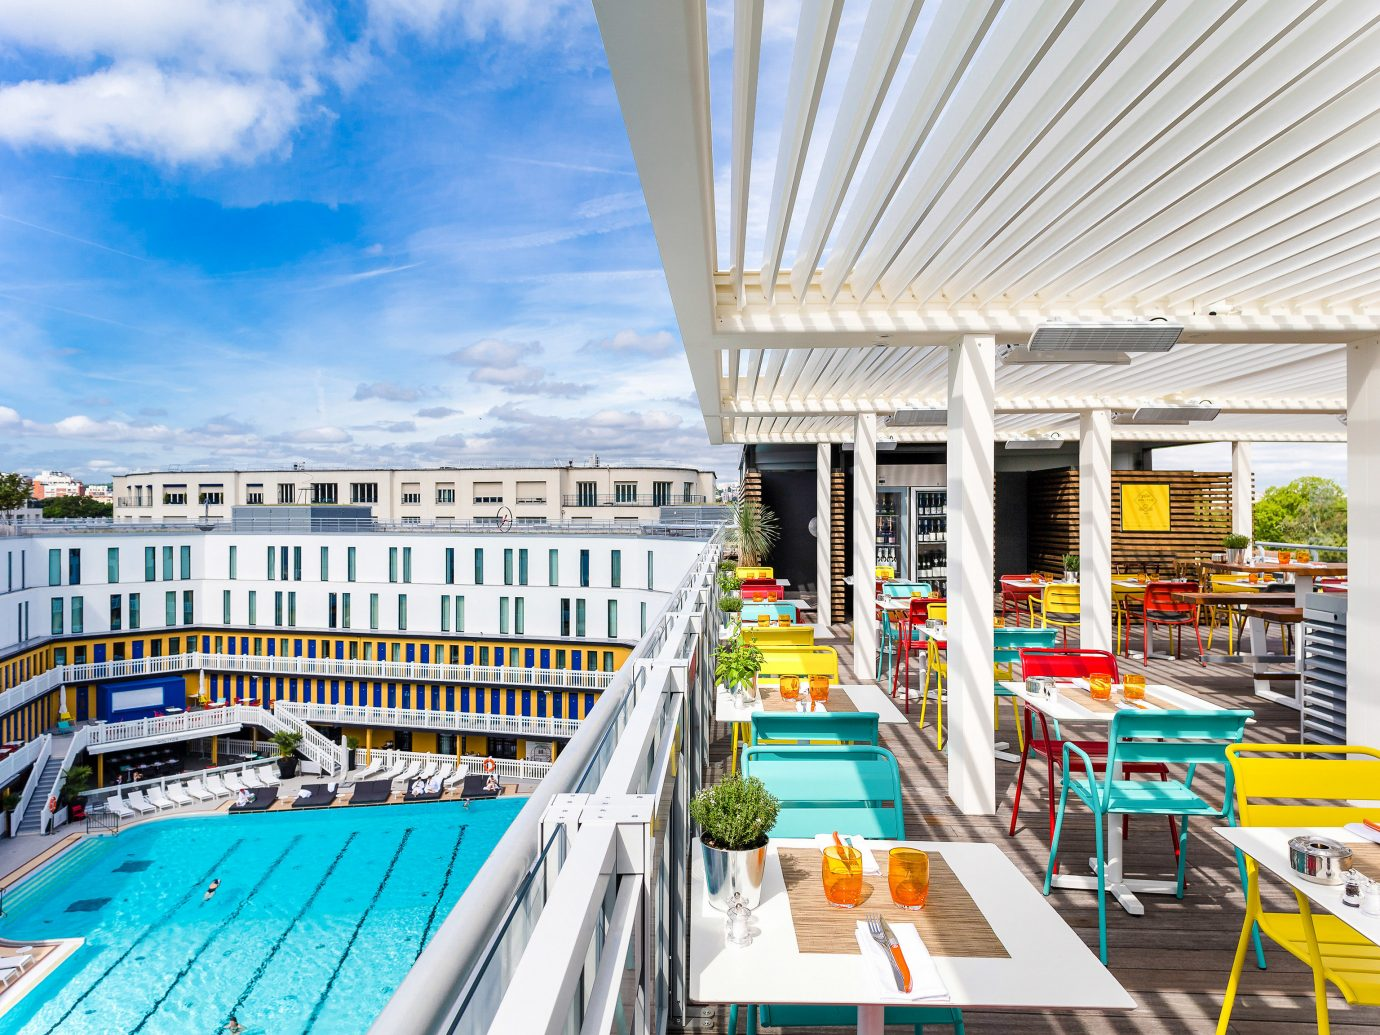 Jetsetter Guides sky leisure mixed use real estate swimming pool metropolitan area condominium apartment leisure centre City hotel vacation recreation roof building